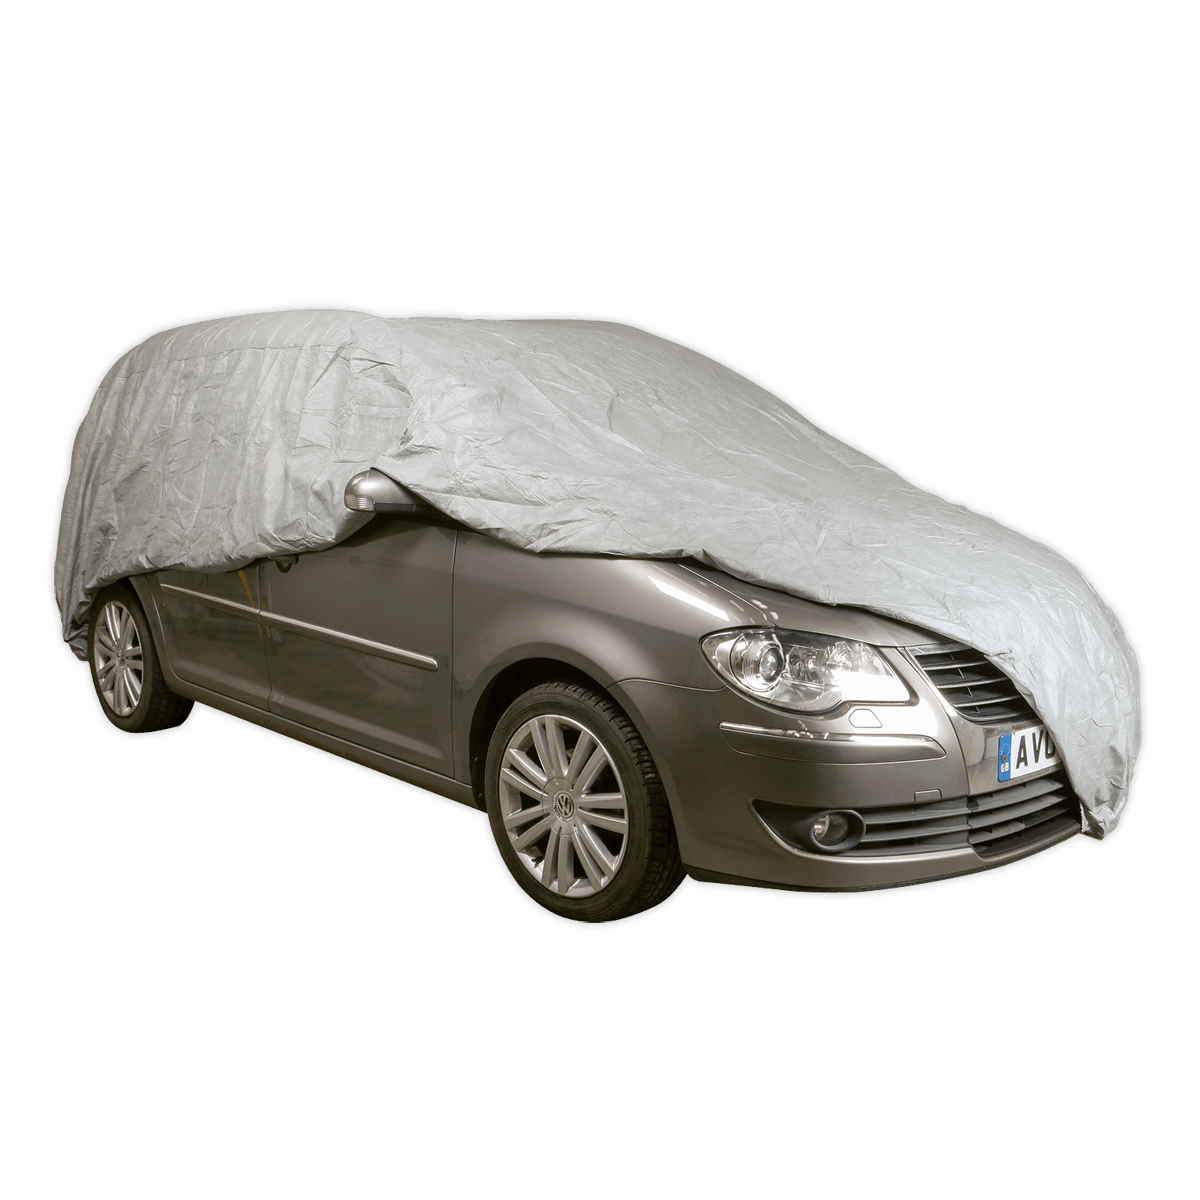 Sealey All Seasons Car Cover 3-Layer - XX-Large SCCXXL